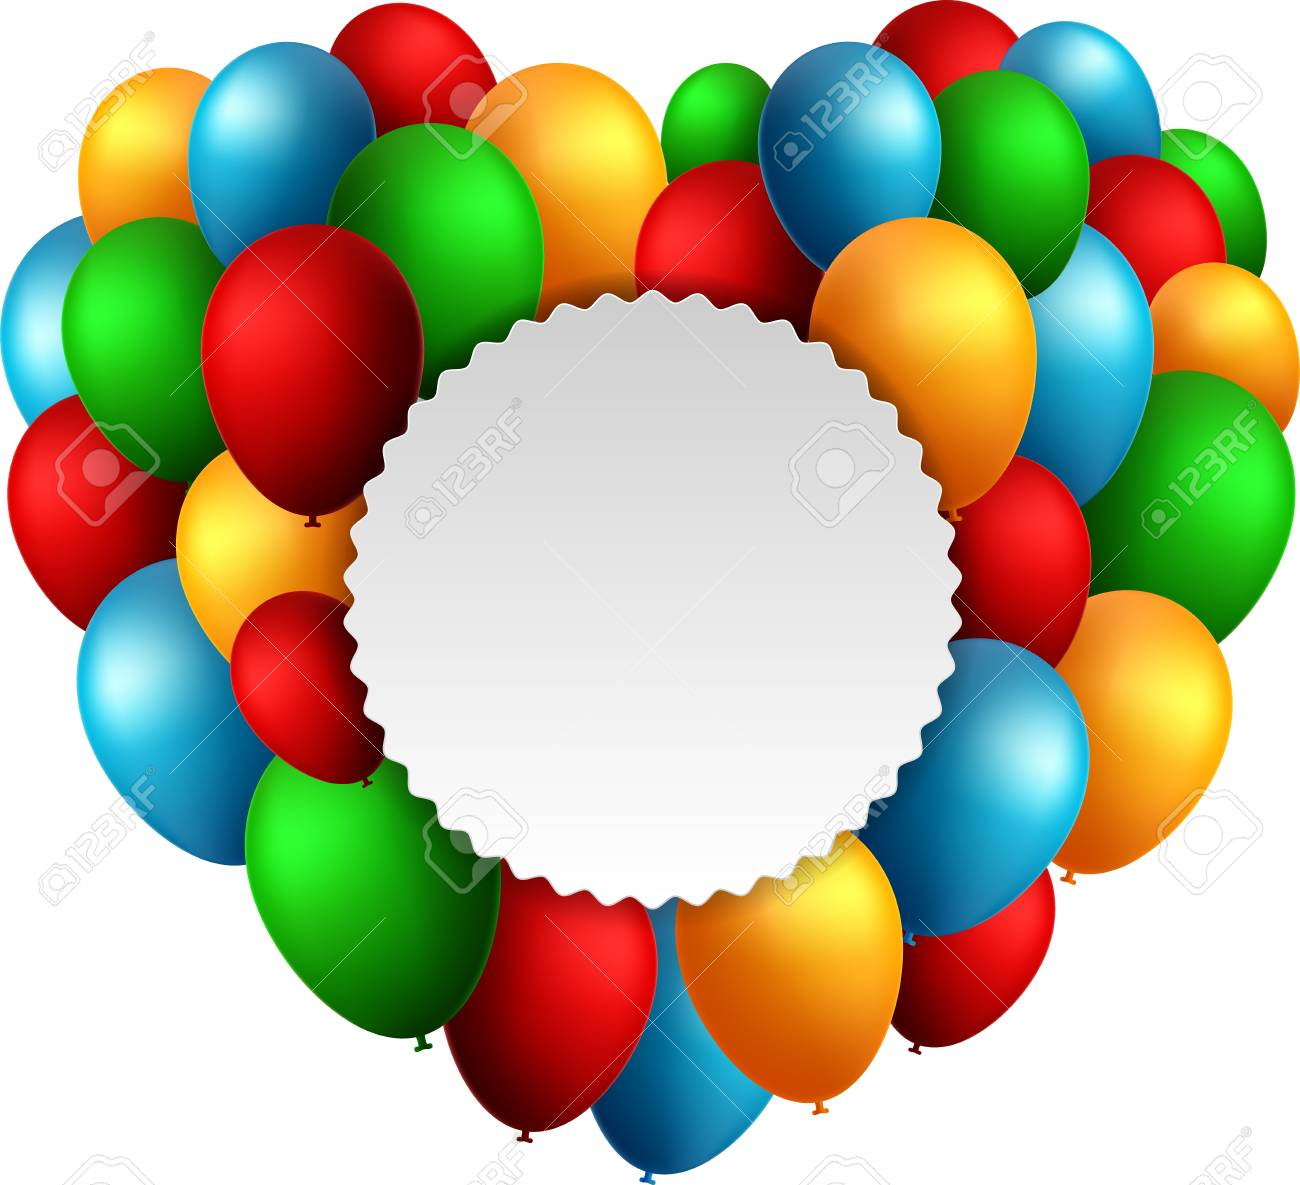 Happy Birthday Balloons Flying For Party And Celebrations With Text In Circle Isolated White Background